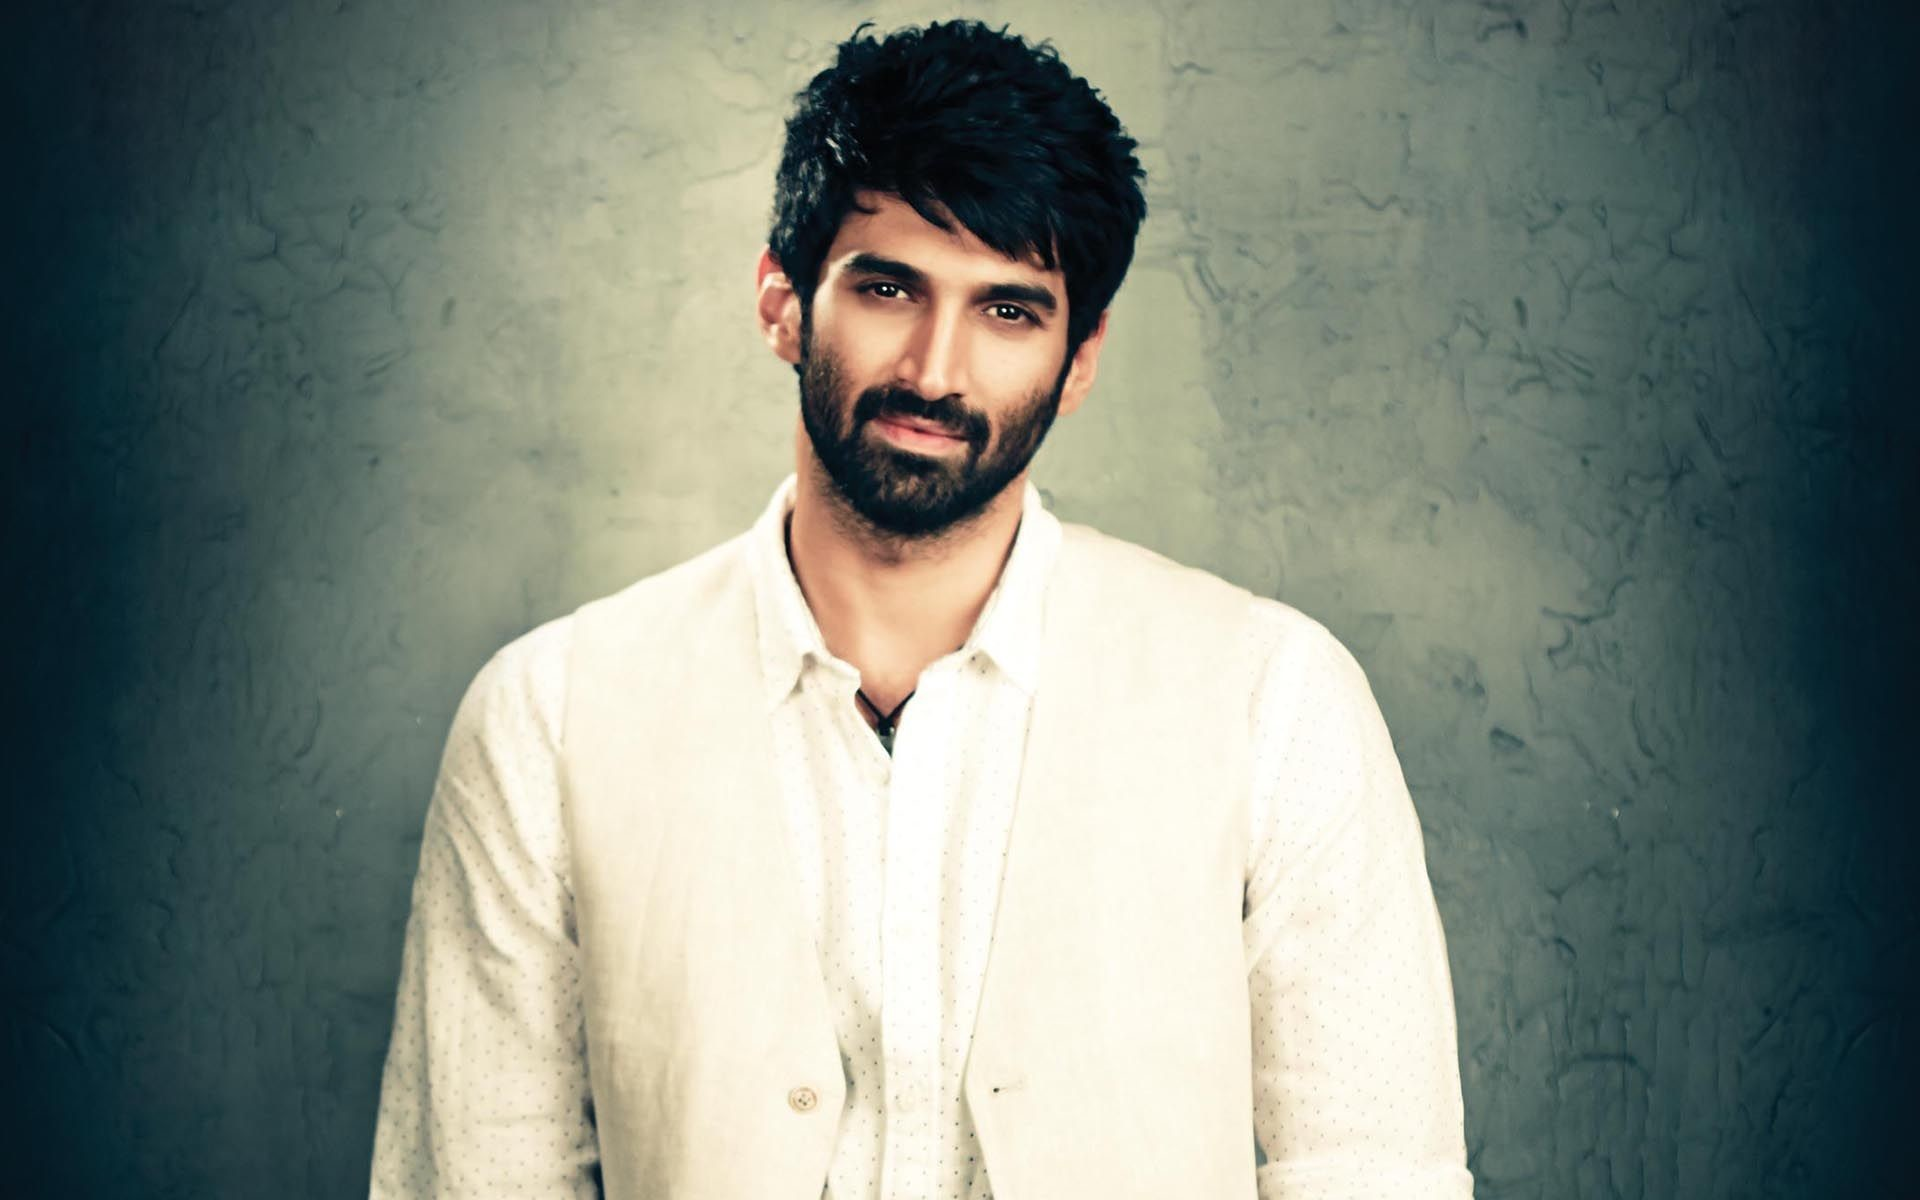 Aditya Roy Kapur Biography And HD Wallpapers – For more please visit to our  site etcfn